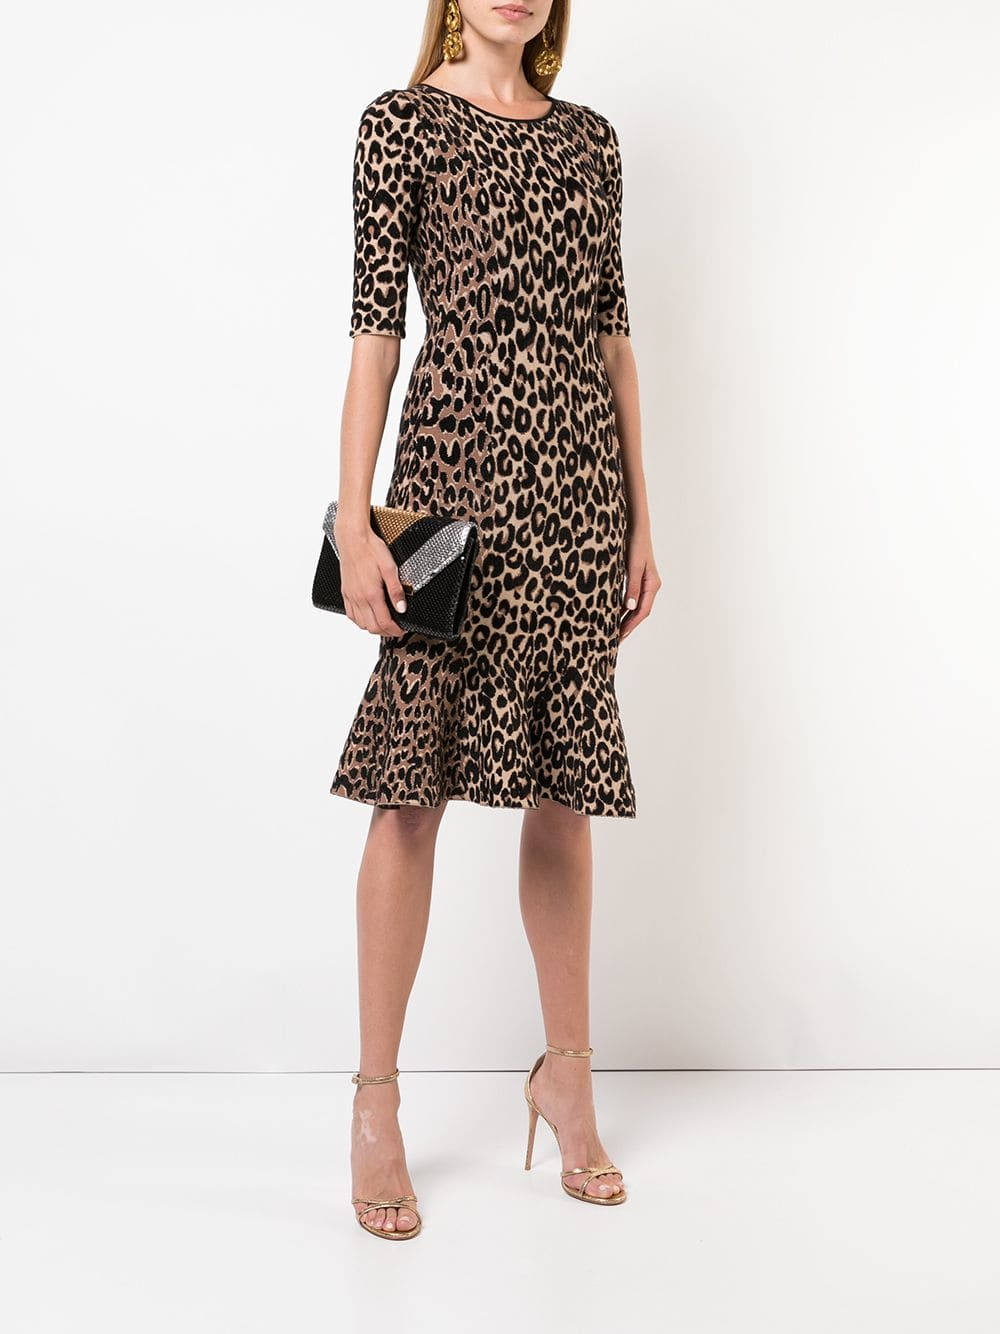 MILLY Leopard Print Brown Dress